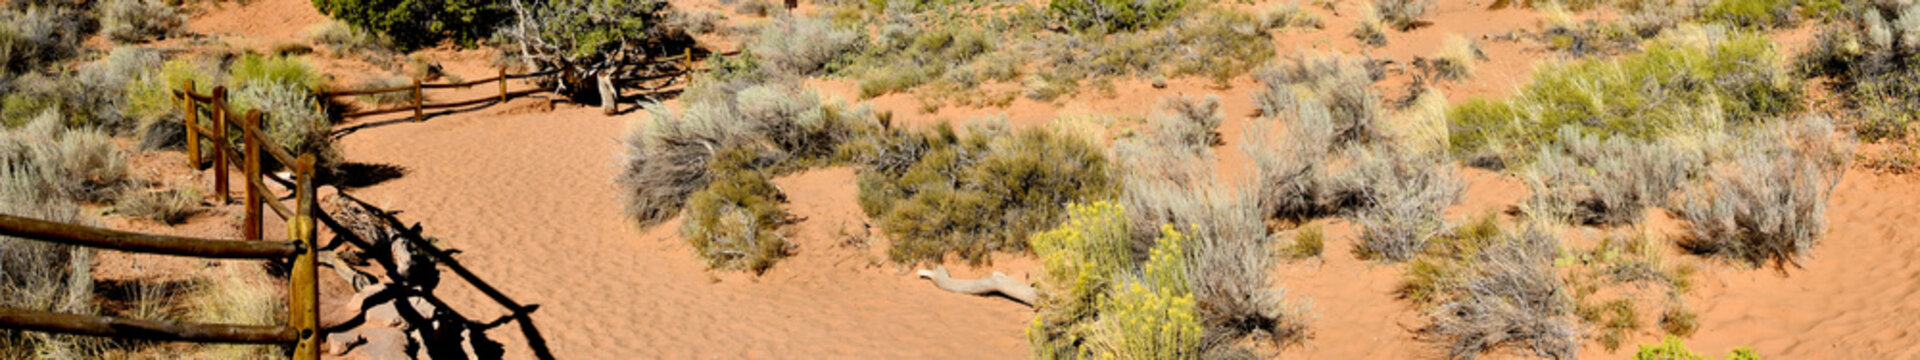 Hiking Trail in Arches National Park